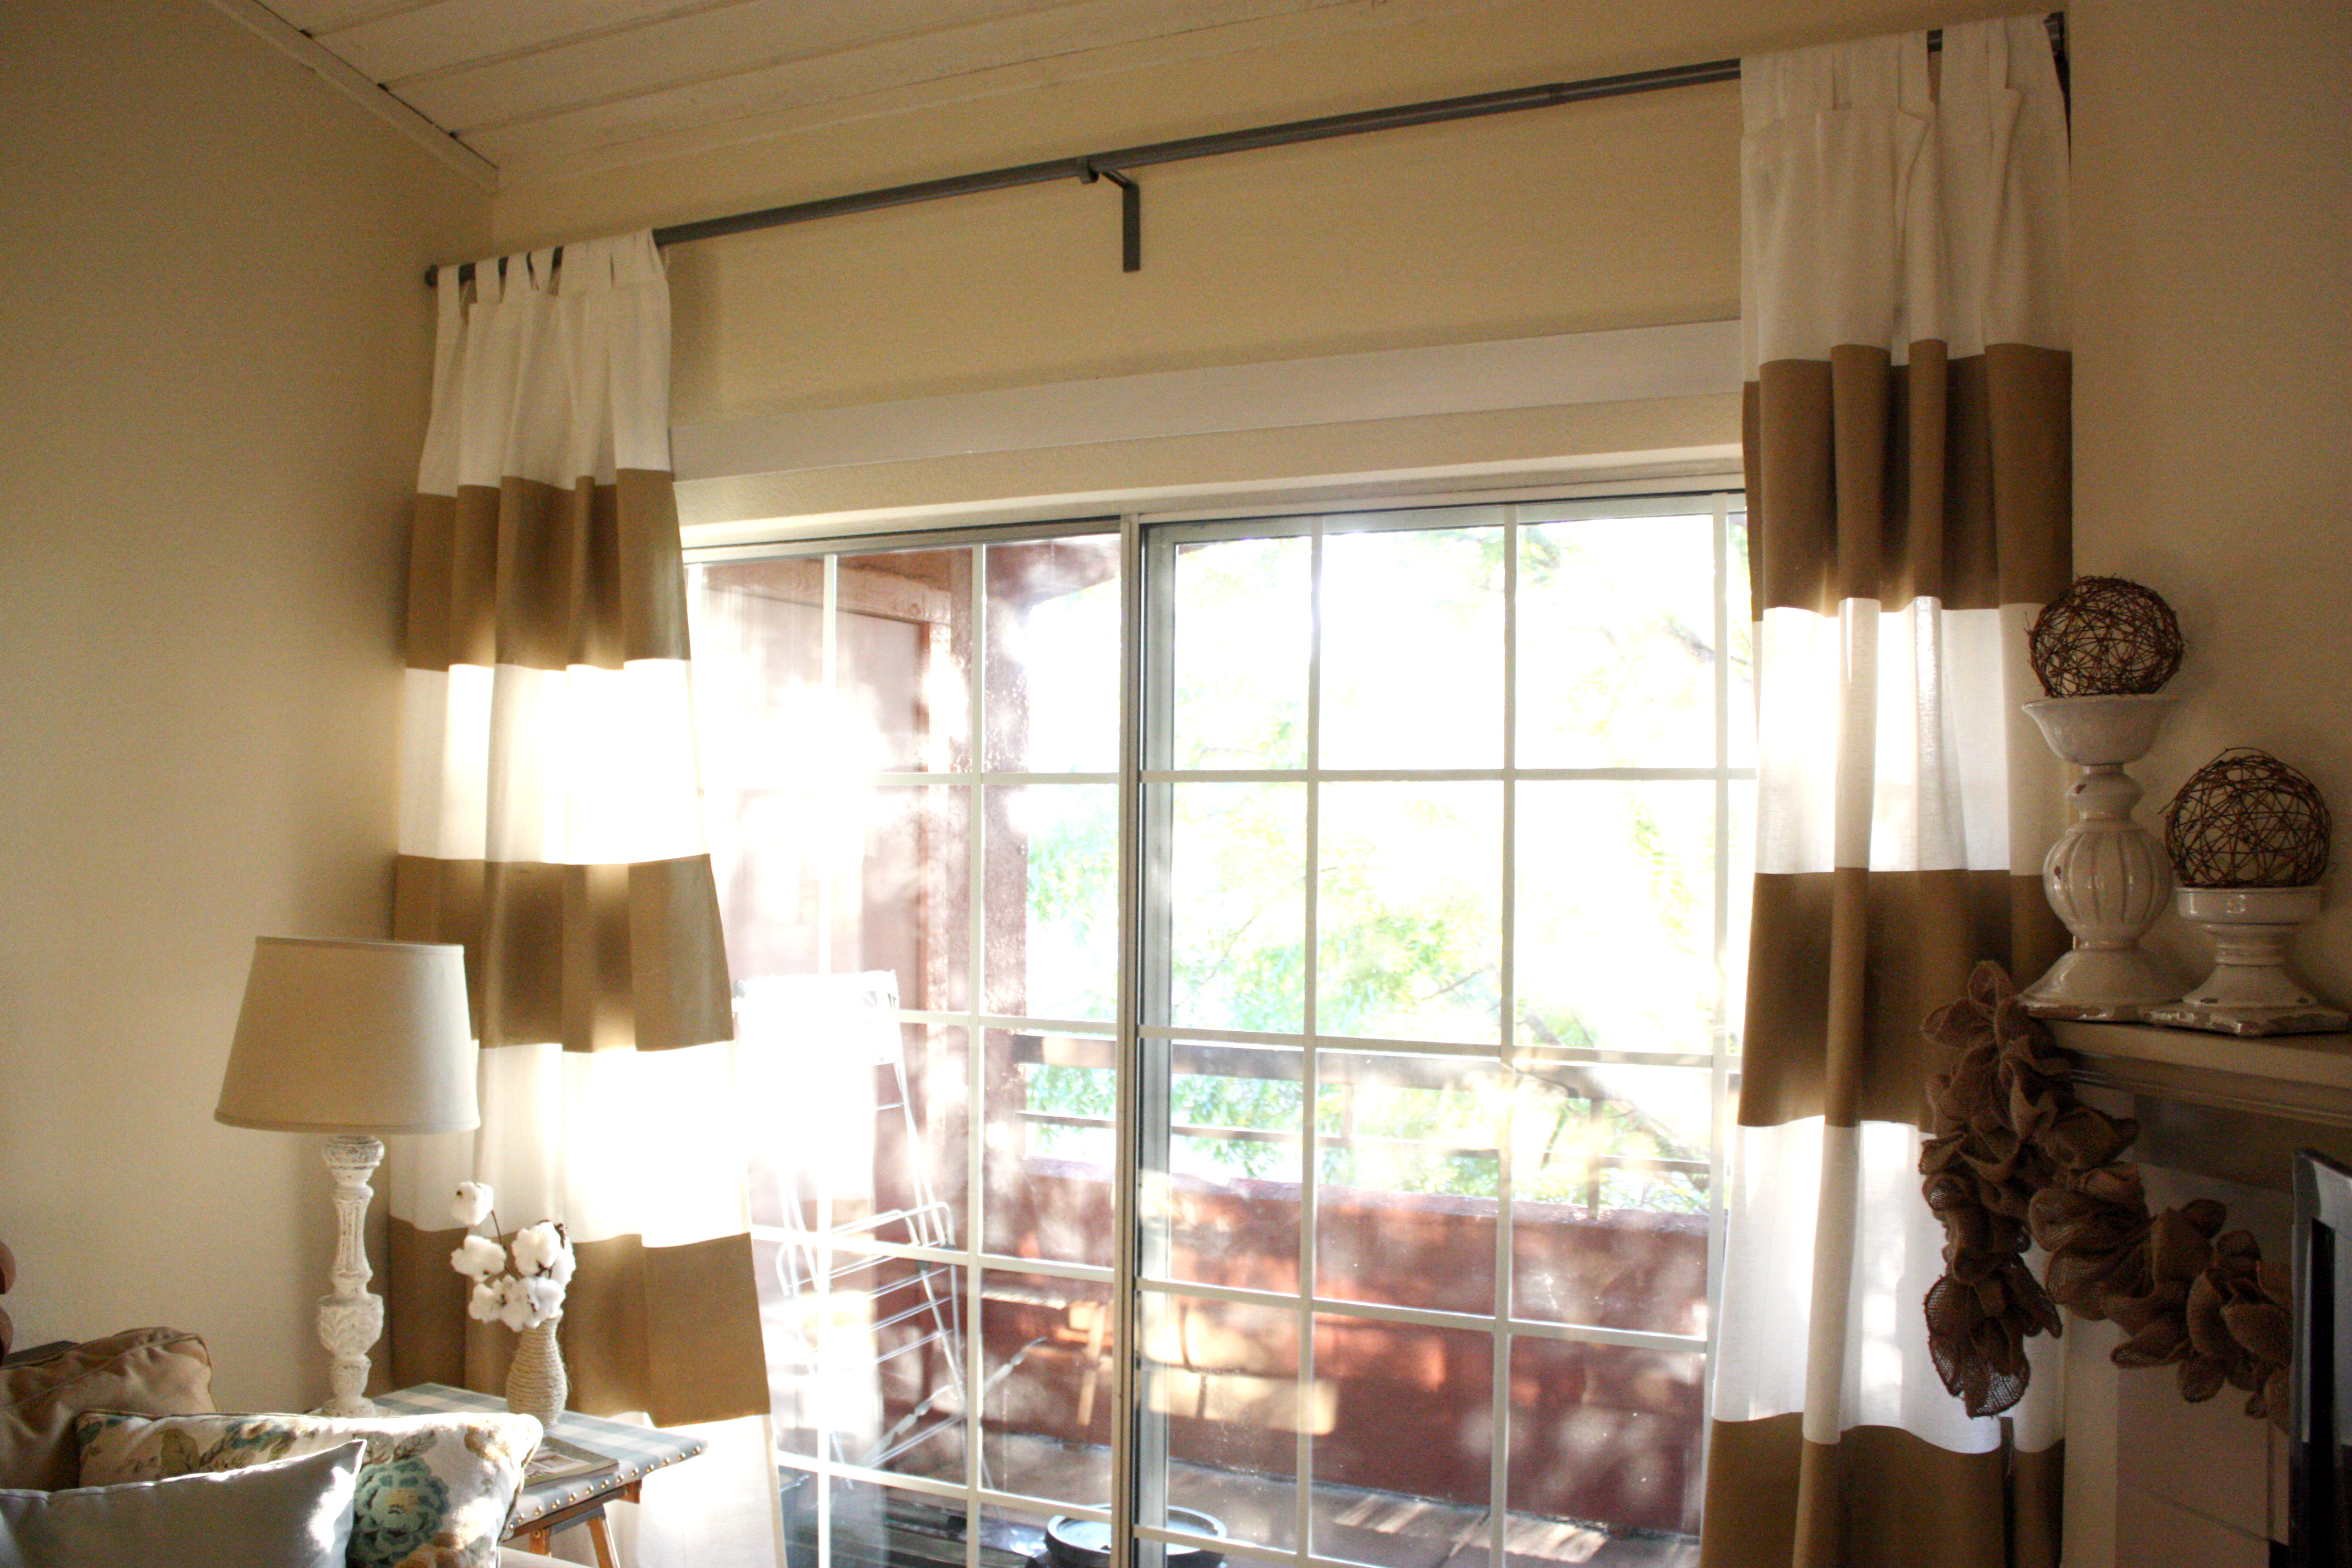 Hand-painted curtains…How-to! | Life in high cotton